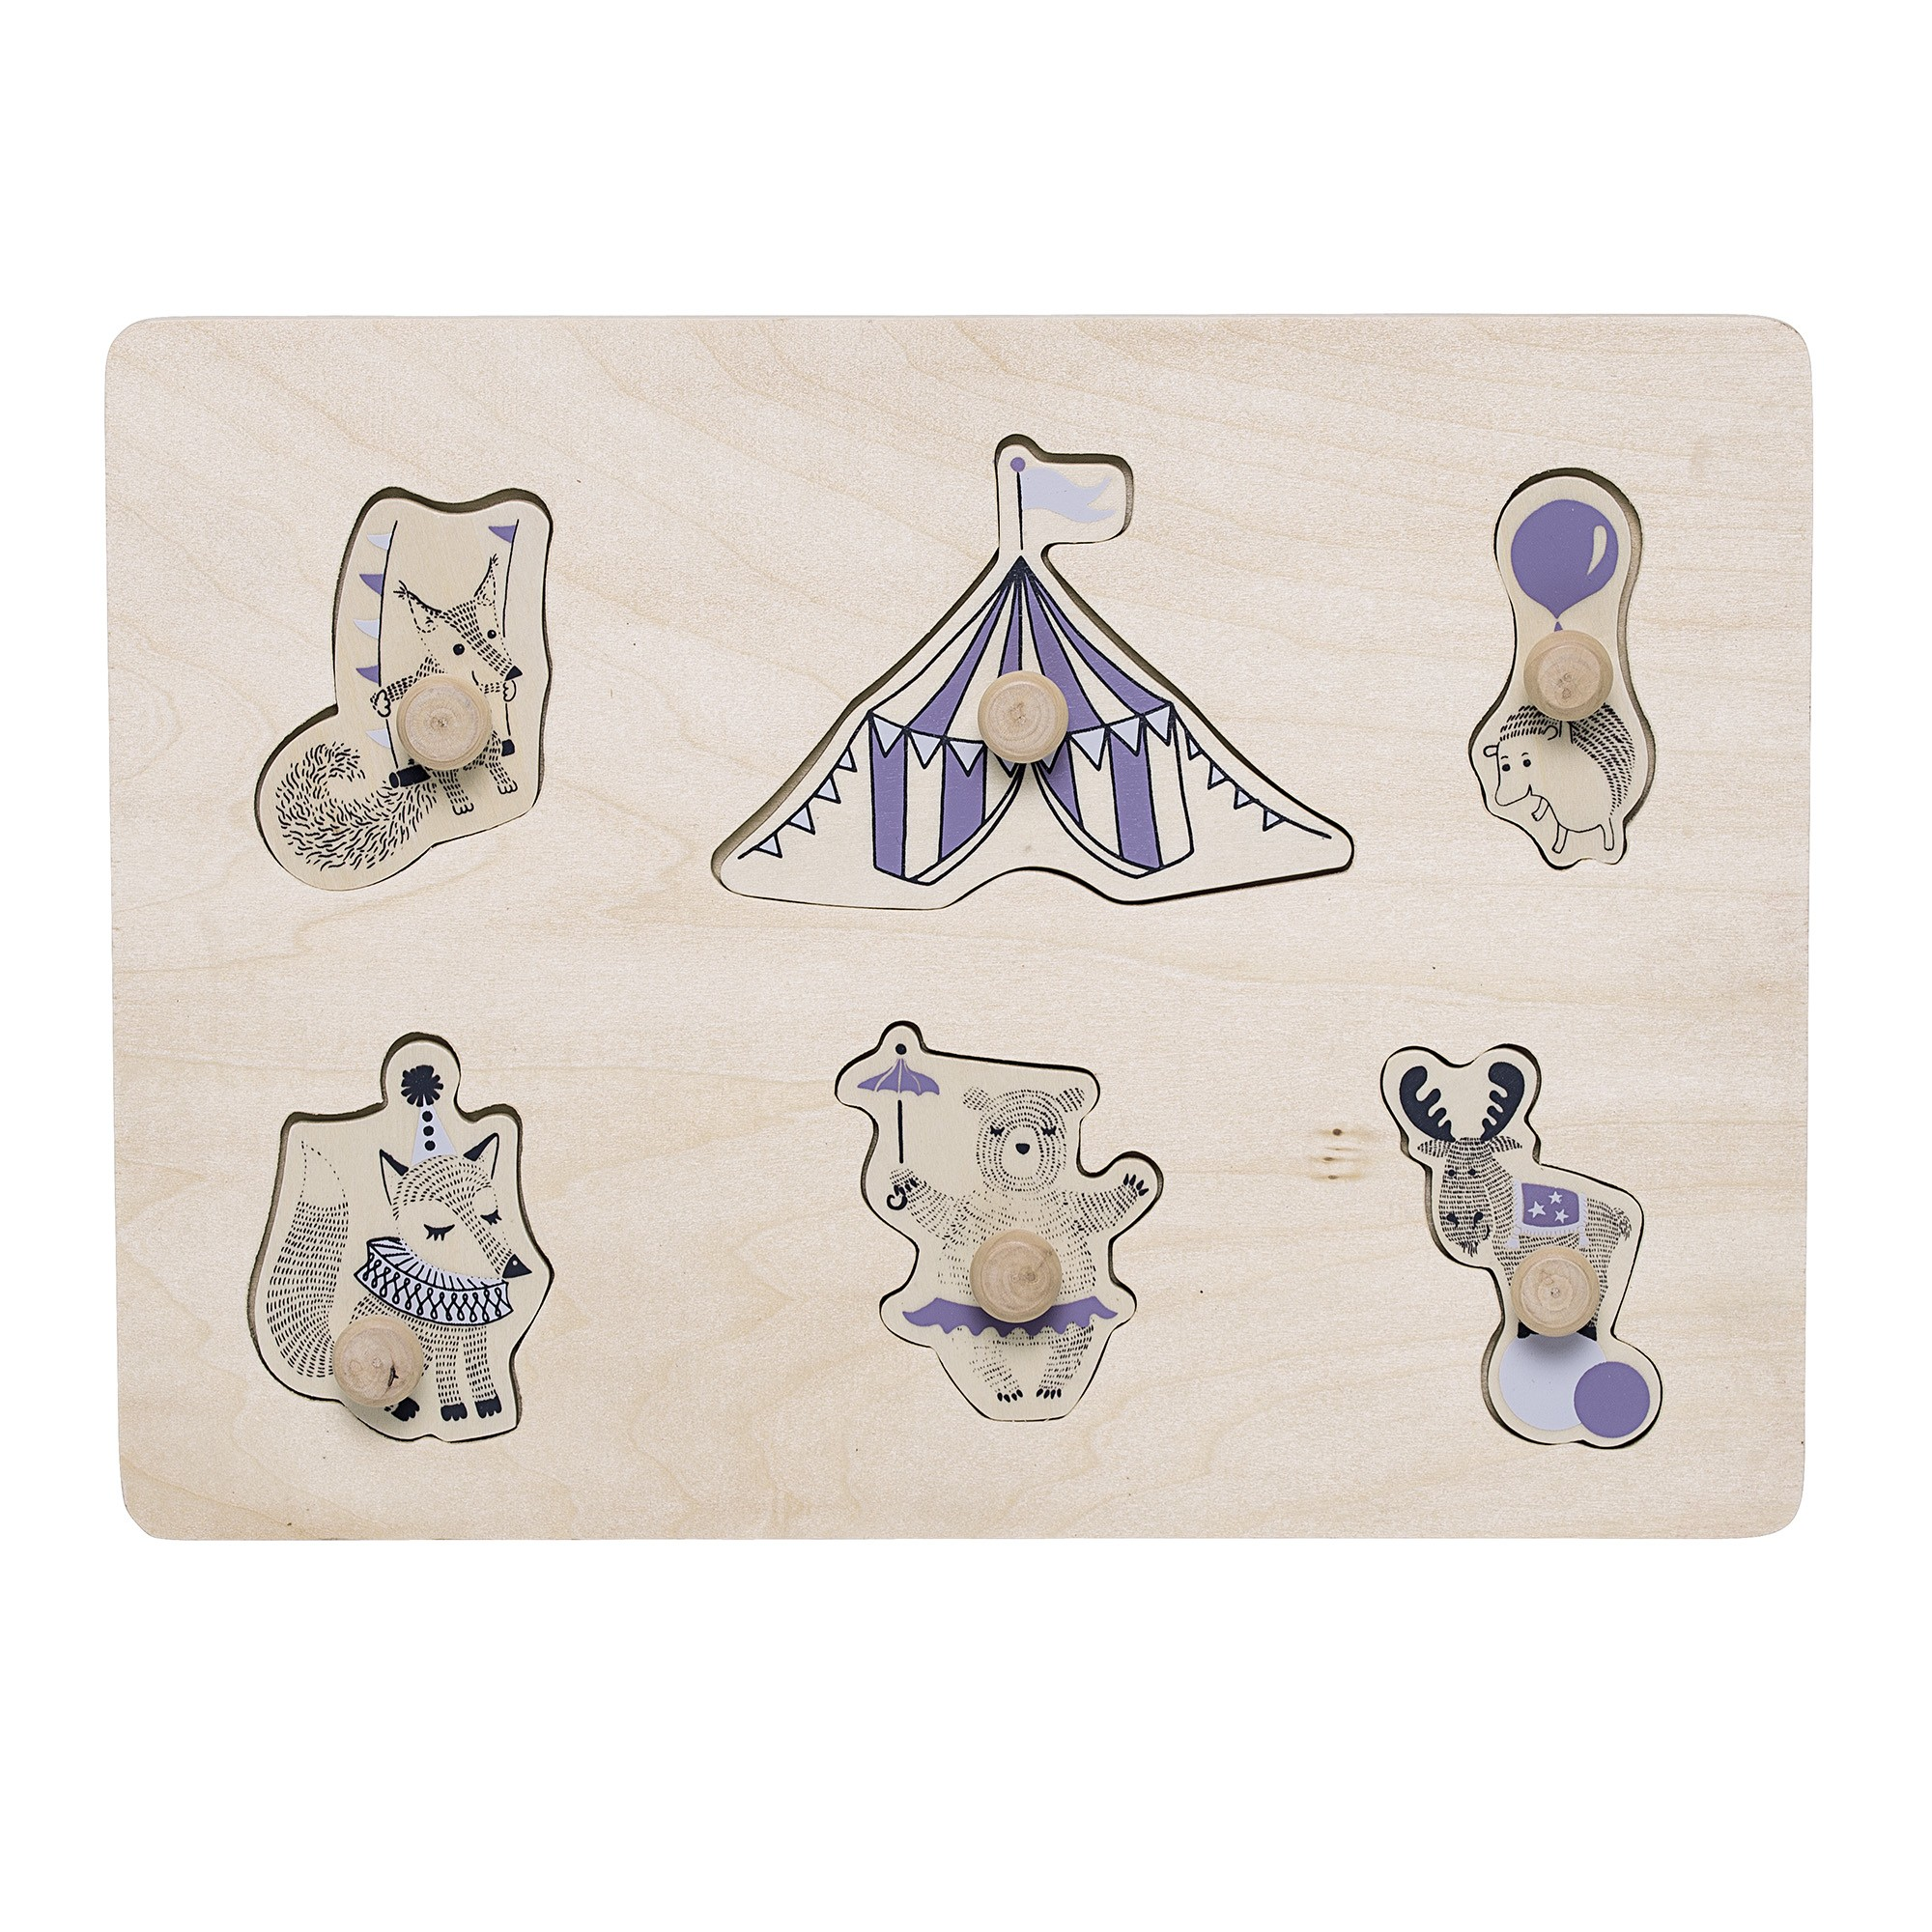 Image of   Circus puzzle w/knobs, purple, plywood